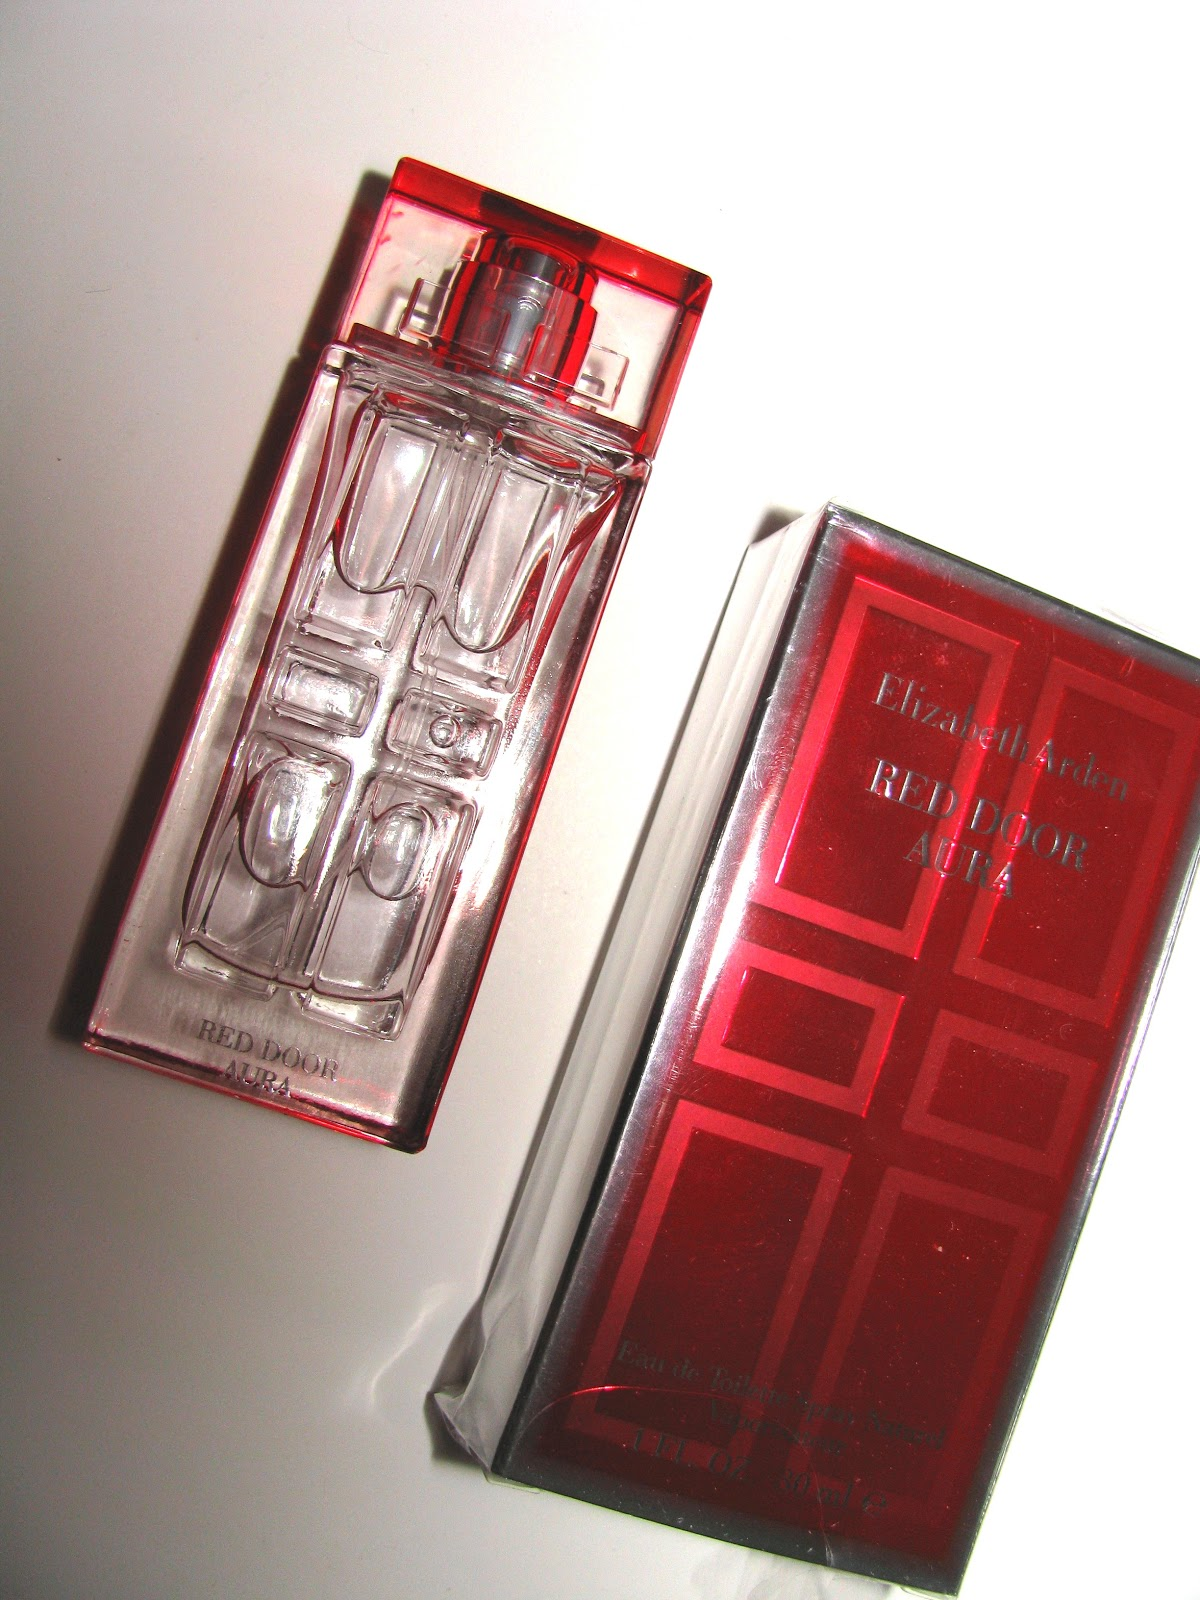 red door aura is a lighter fruitier floral than red door with notes of raspeberry bergamot and orange blossom at the top it has a floral burst tinged